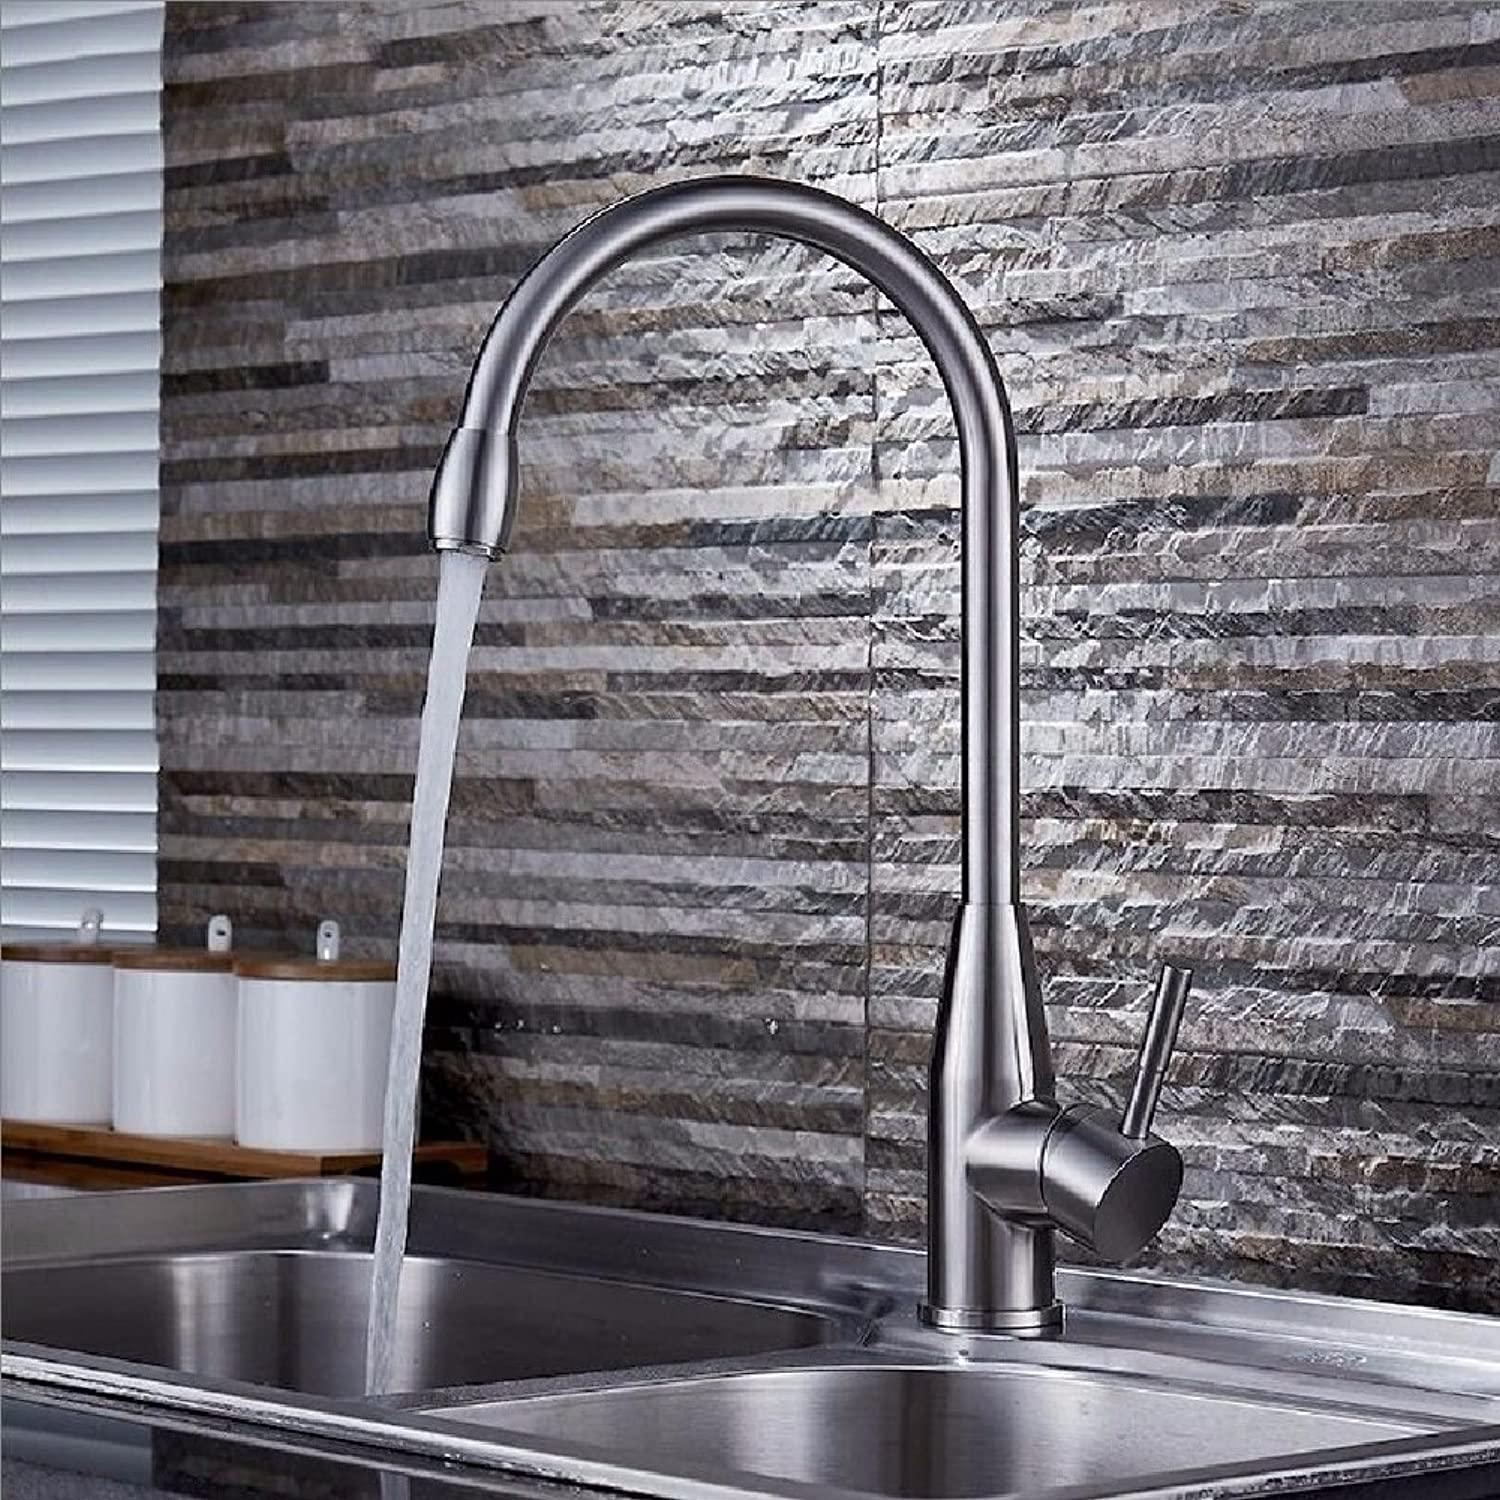 Lalaky Taps Faucet Kitchen Mixer Sink Waterfall Bathroom Mixer Basin Mixer Tap for Kitchen Bathroom and Washroom 304 Stainless Steel Hot and Cold redatable